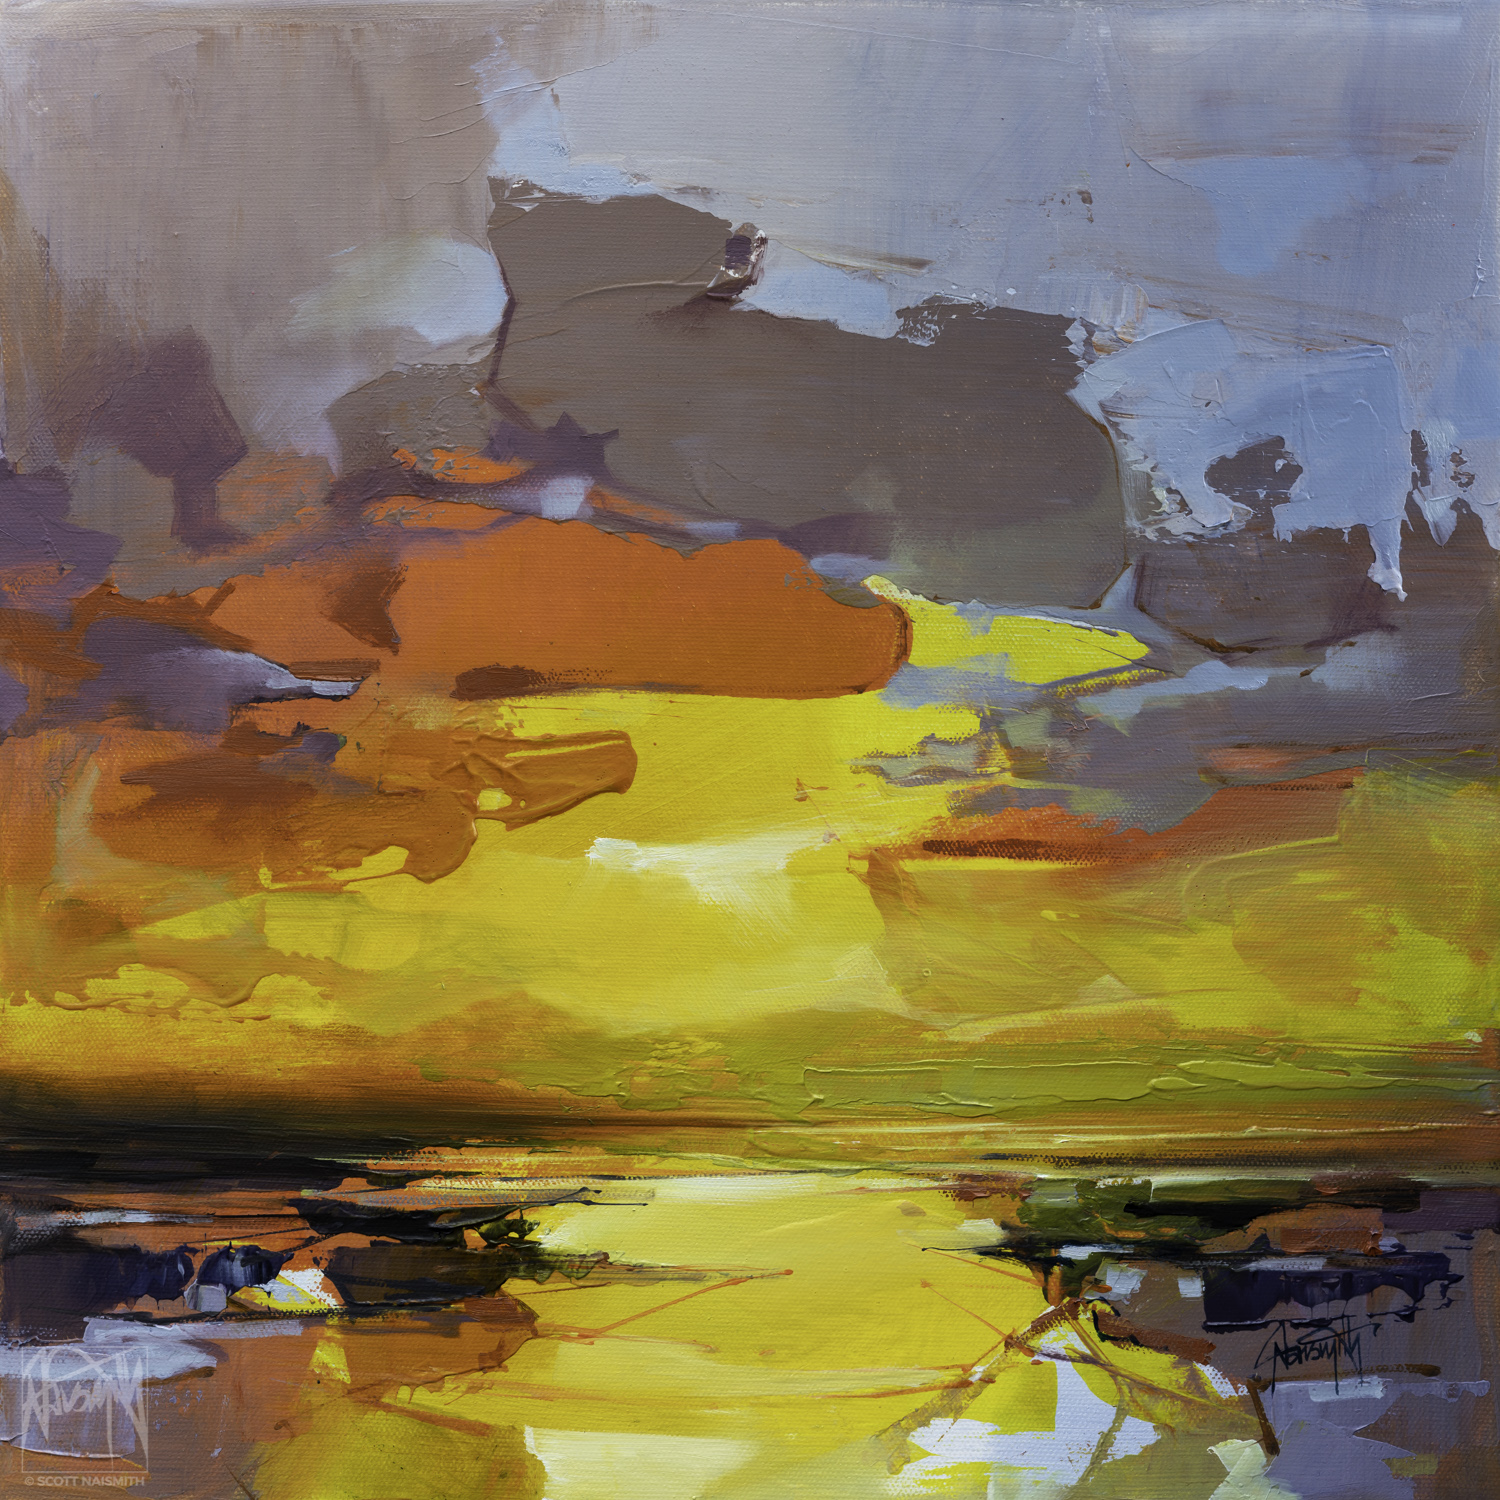 'Clarity in Chaos III' by Scott Naismith